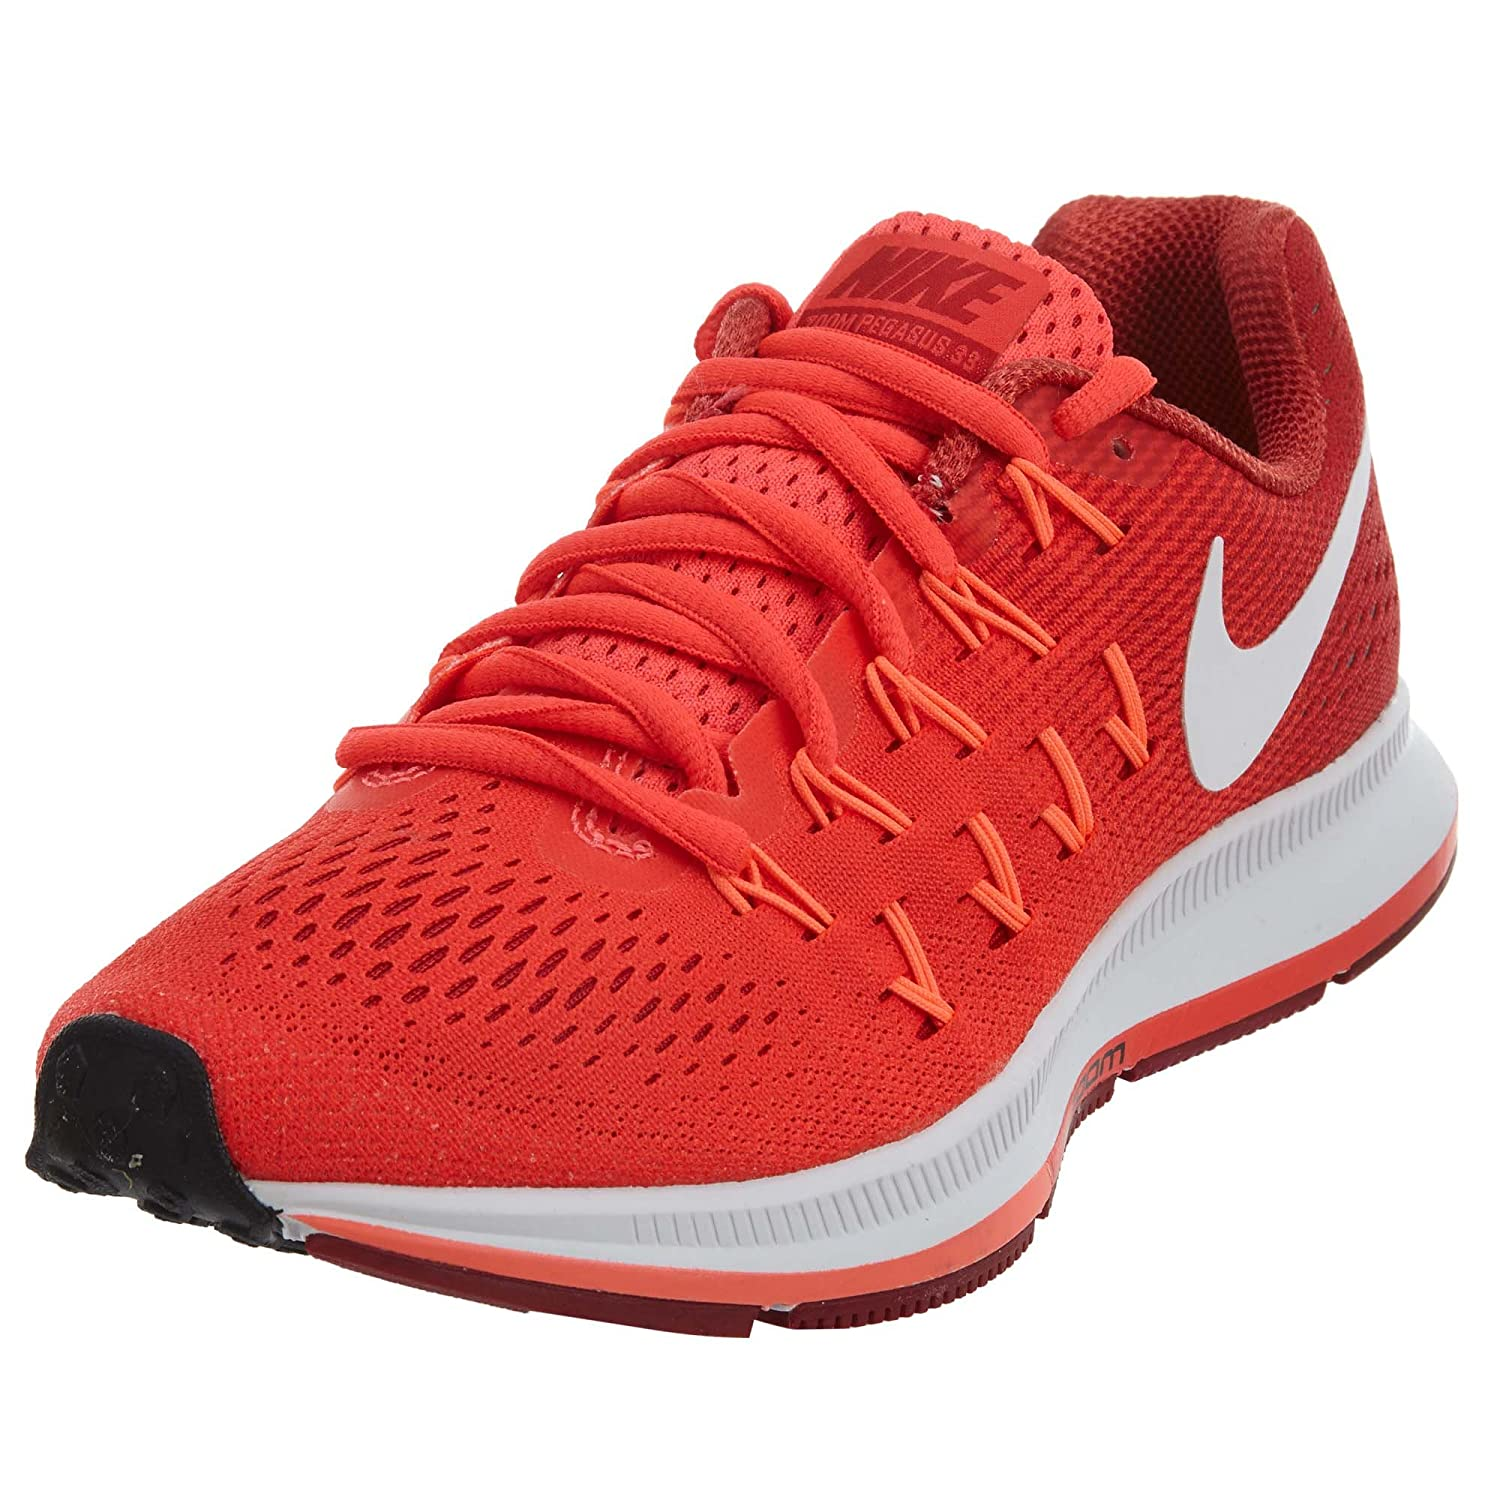 eso es todo bufanda Inmundo  Buy Nike Women's Air Zoom Pegasus 33 Running Shoe Bright Crimson/Gym  Red/Bright Mango/White Size 8 M US at Amazon.in